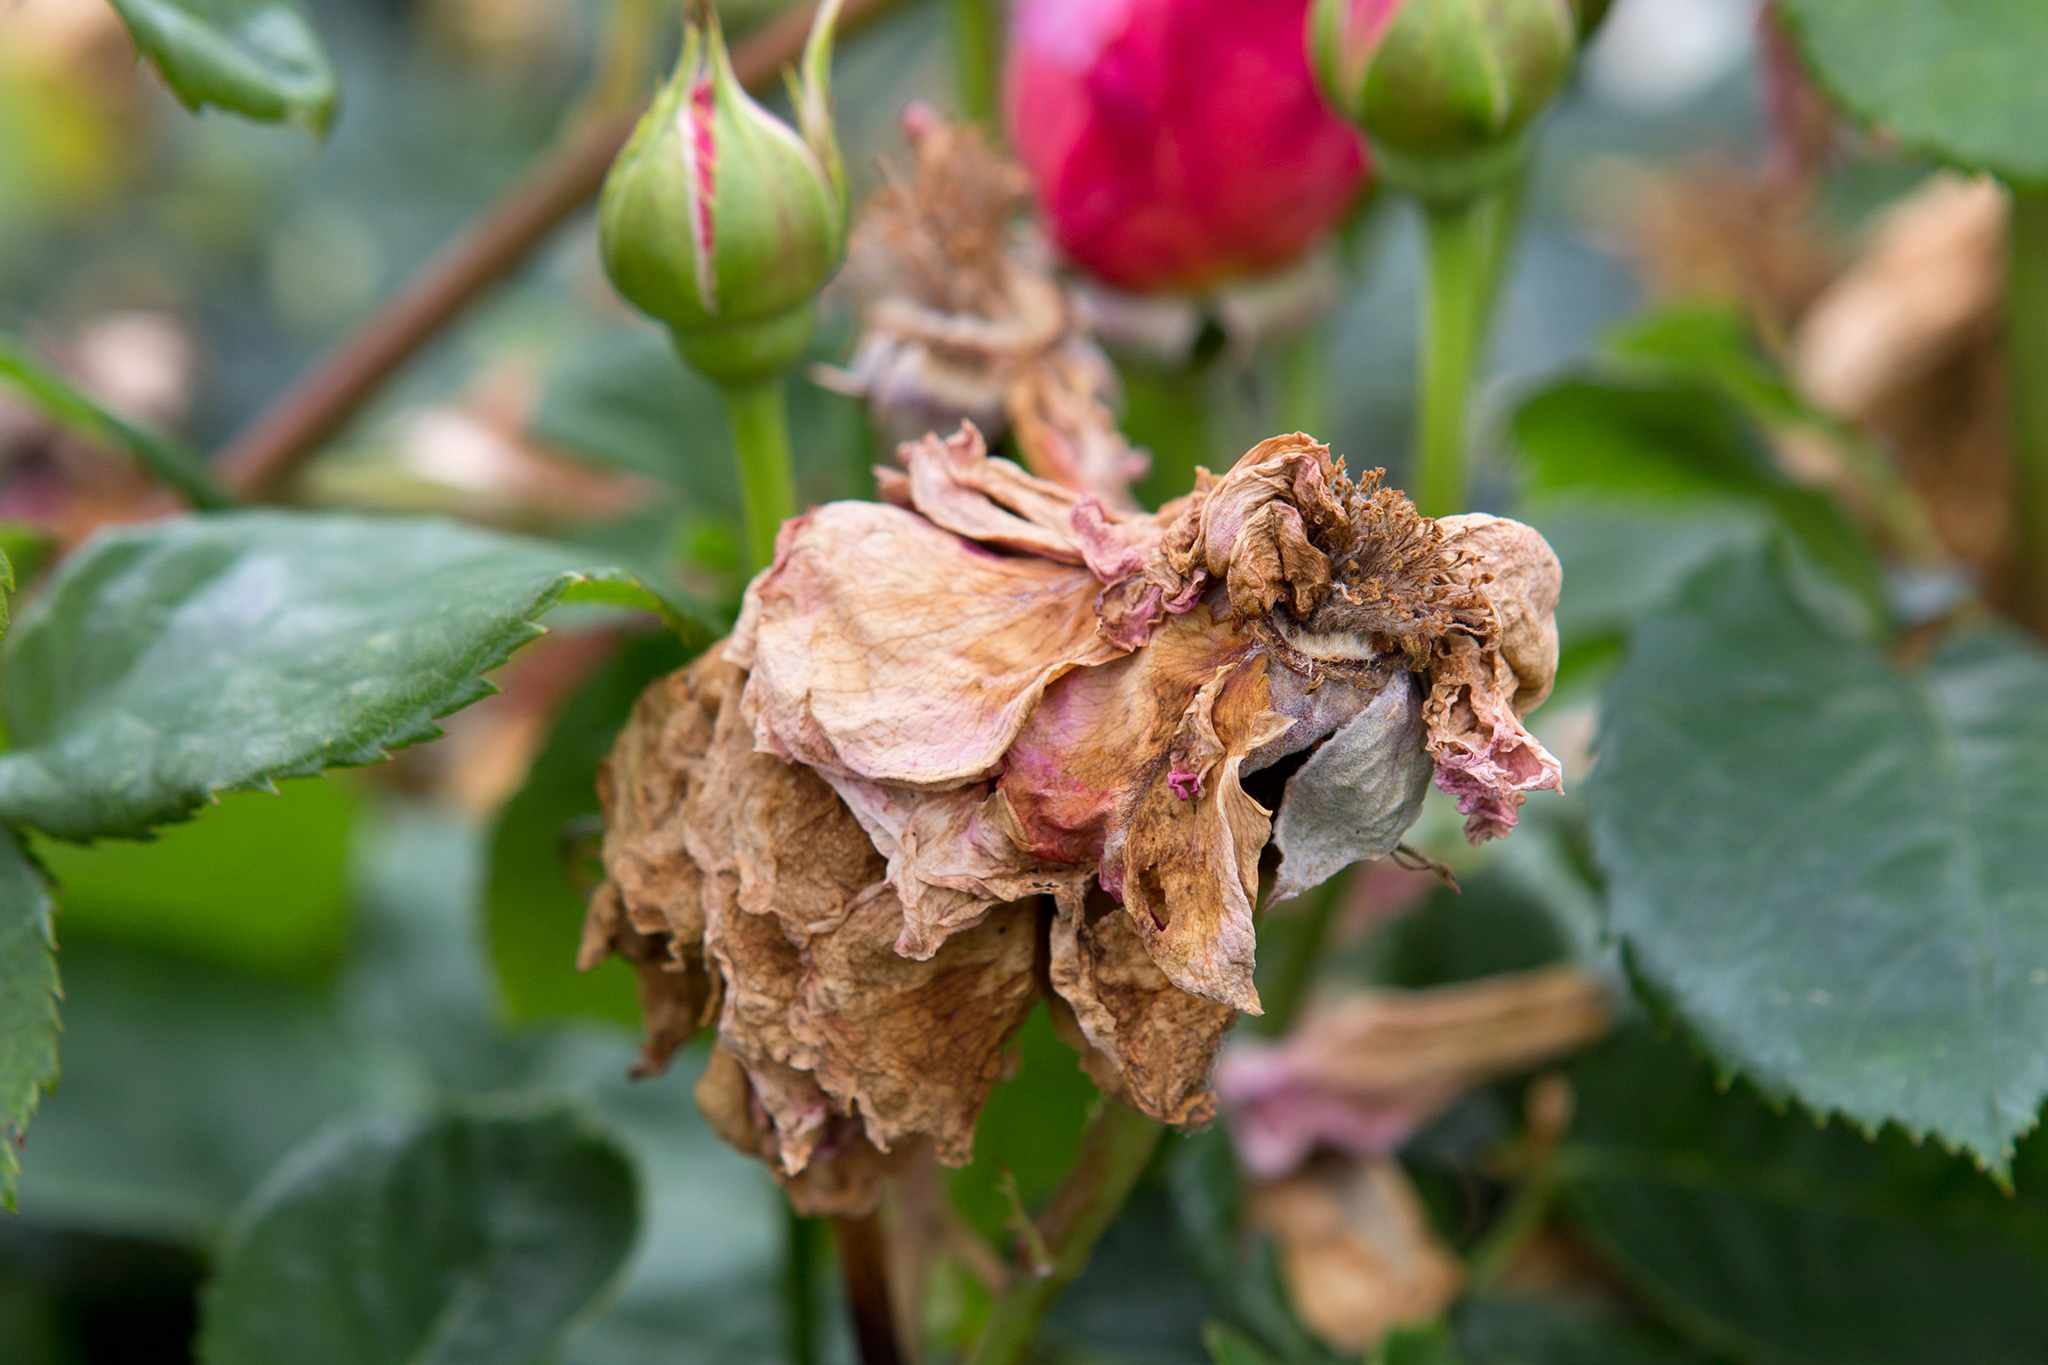 A withered rose flower that failed to open due to rose bloom balling